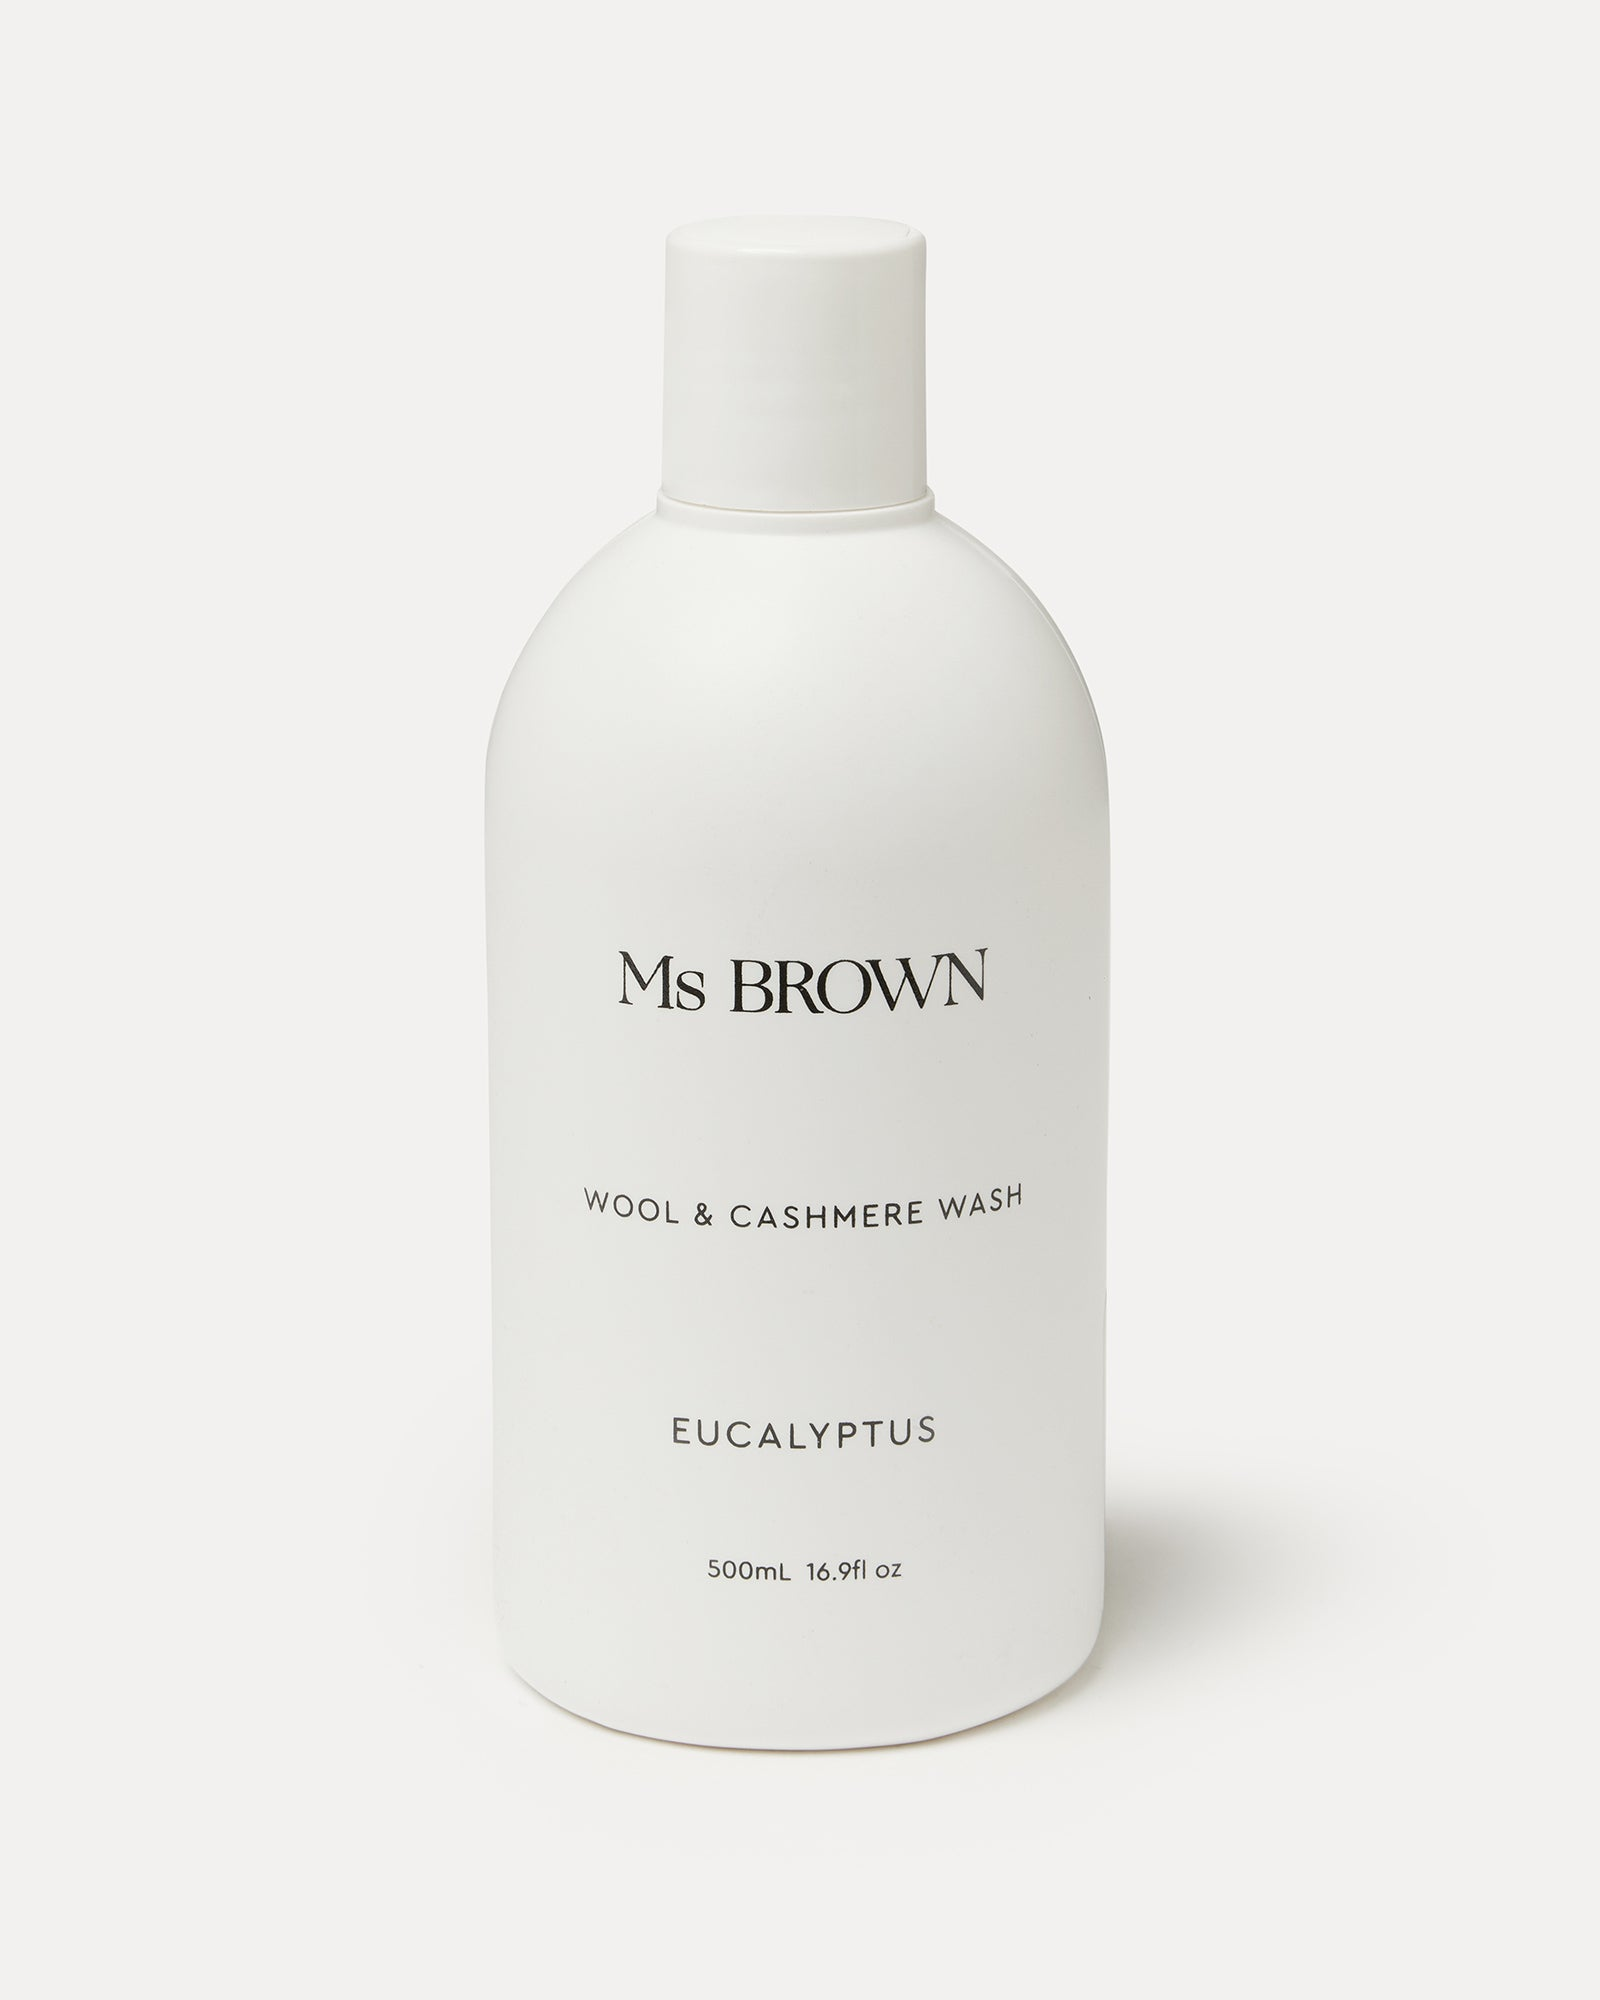 Ms Brown Wool & Cashmere Wash Eucalyptus